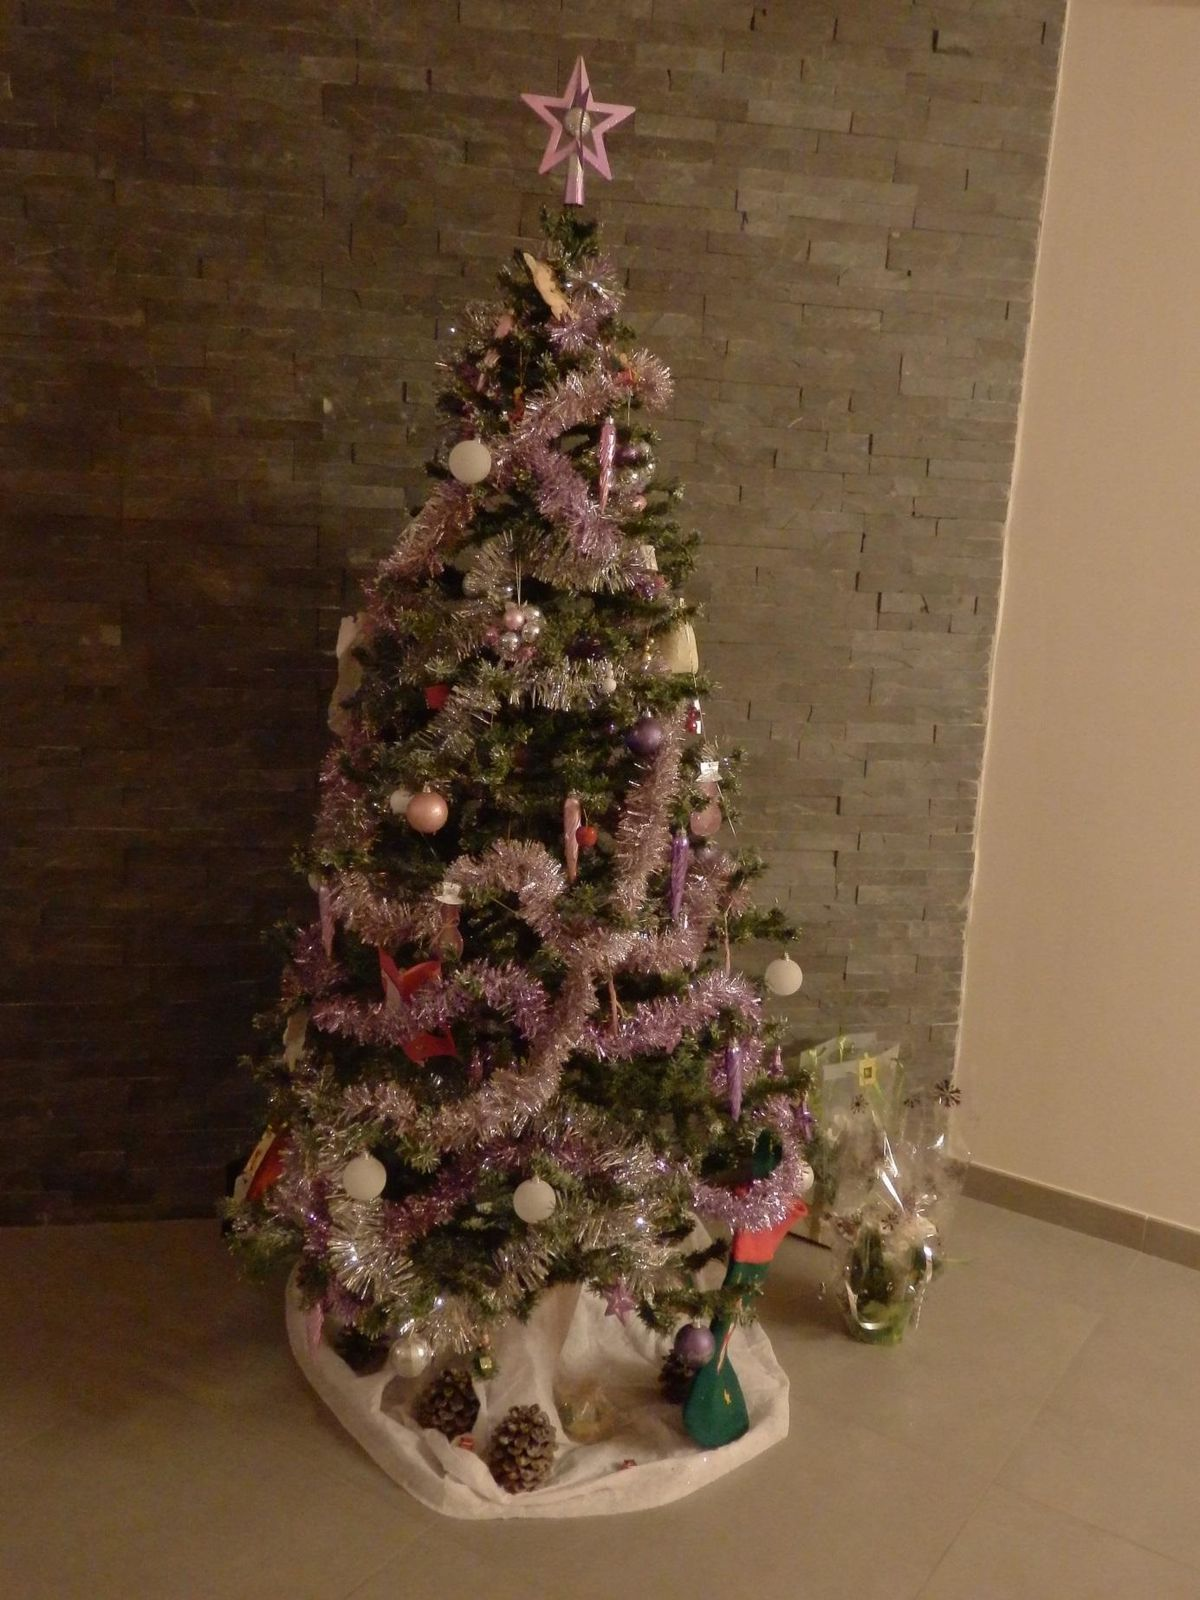 Loïc's Christmas tree… with beautiful garlands!